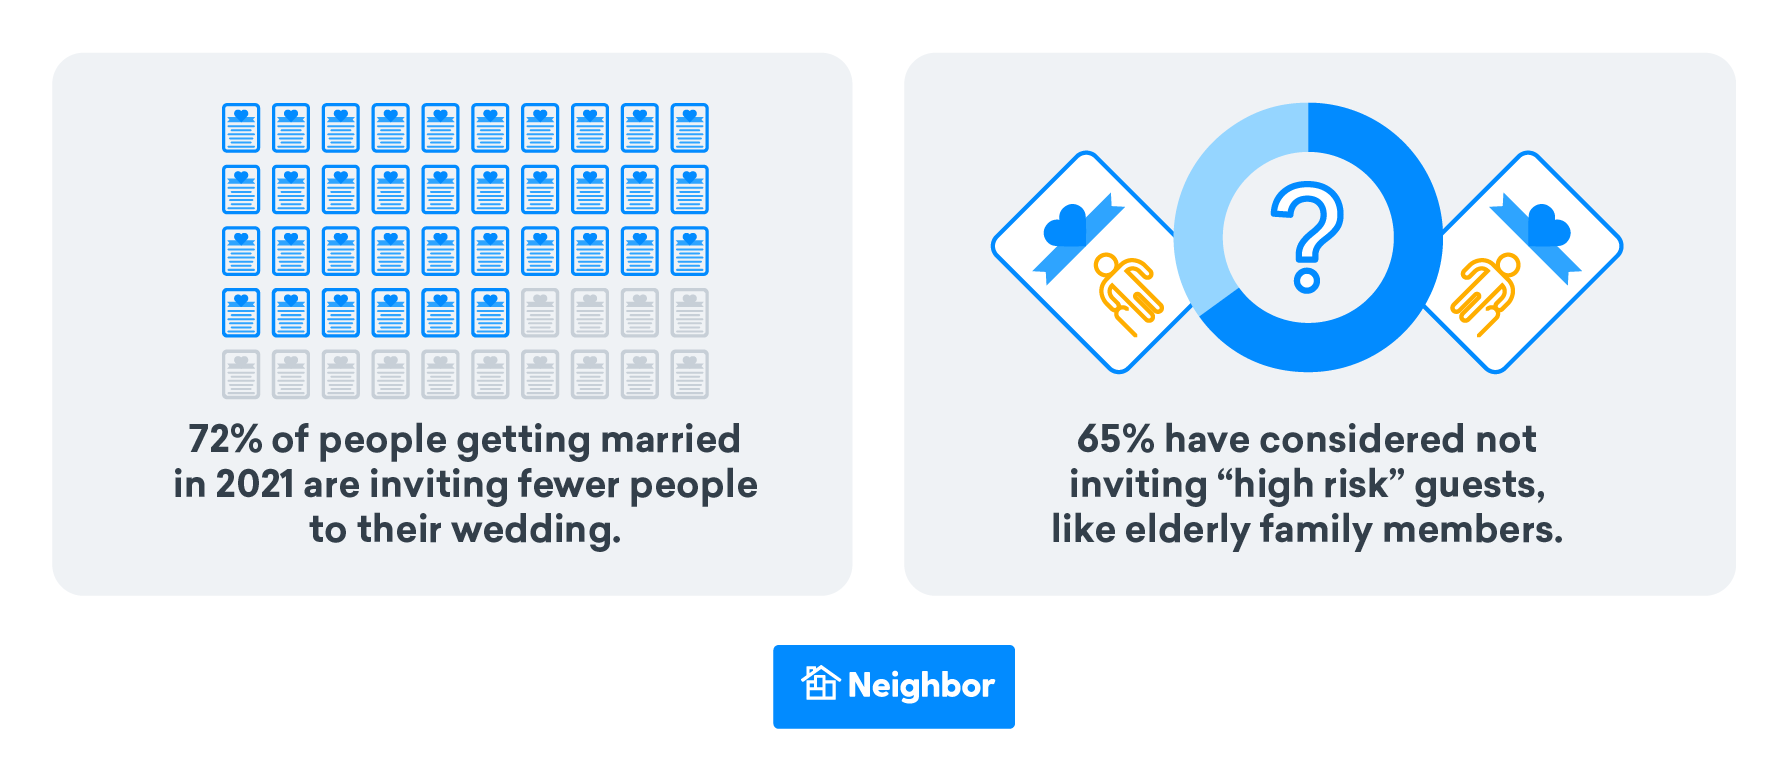 Most People Are Limiting or Reducing Their Guest Lists